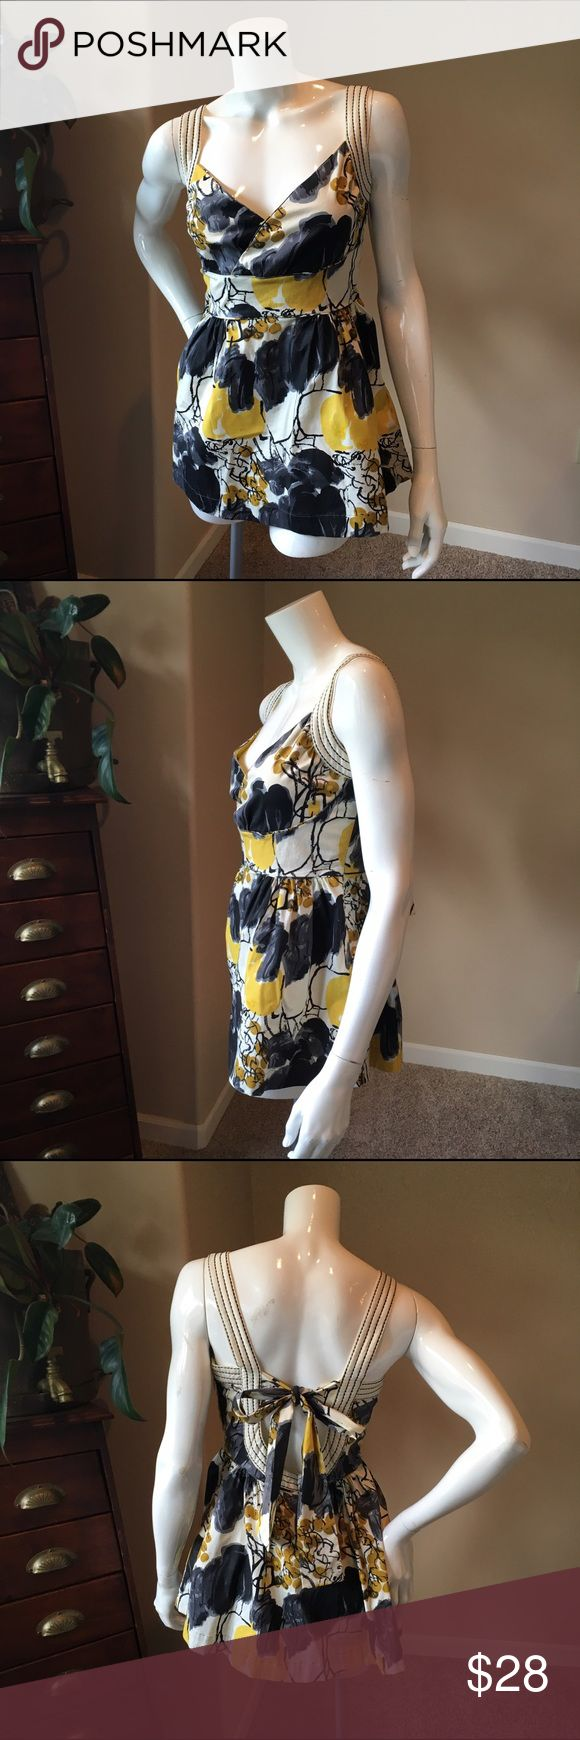 Viola Anthro 10 yellow floral pretty top Viola Anthropologie 10 yellow floral pretty top, lovely little top perfect to wear with skinny jeans and heels. Yellow floral perfect for spring. Measurements will be posted soon. Anthropologie Tops Blouses